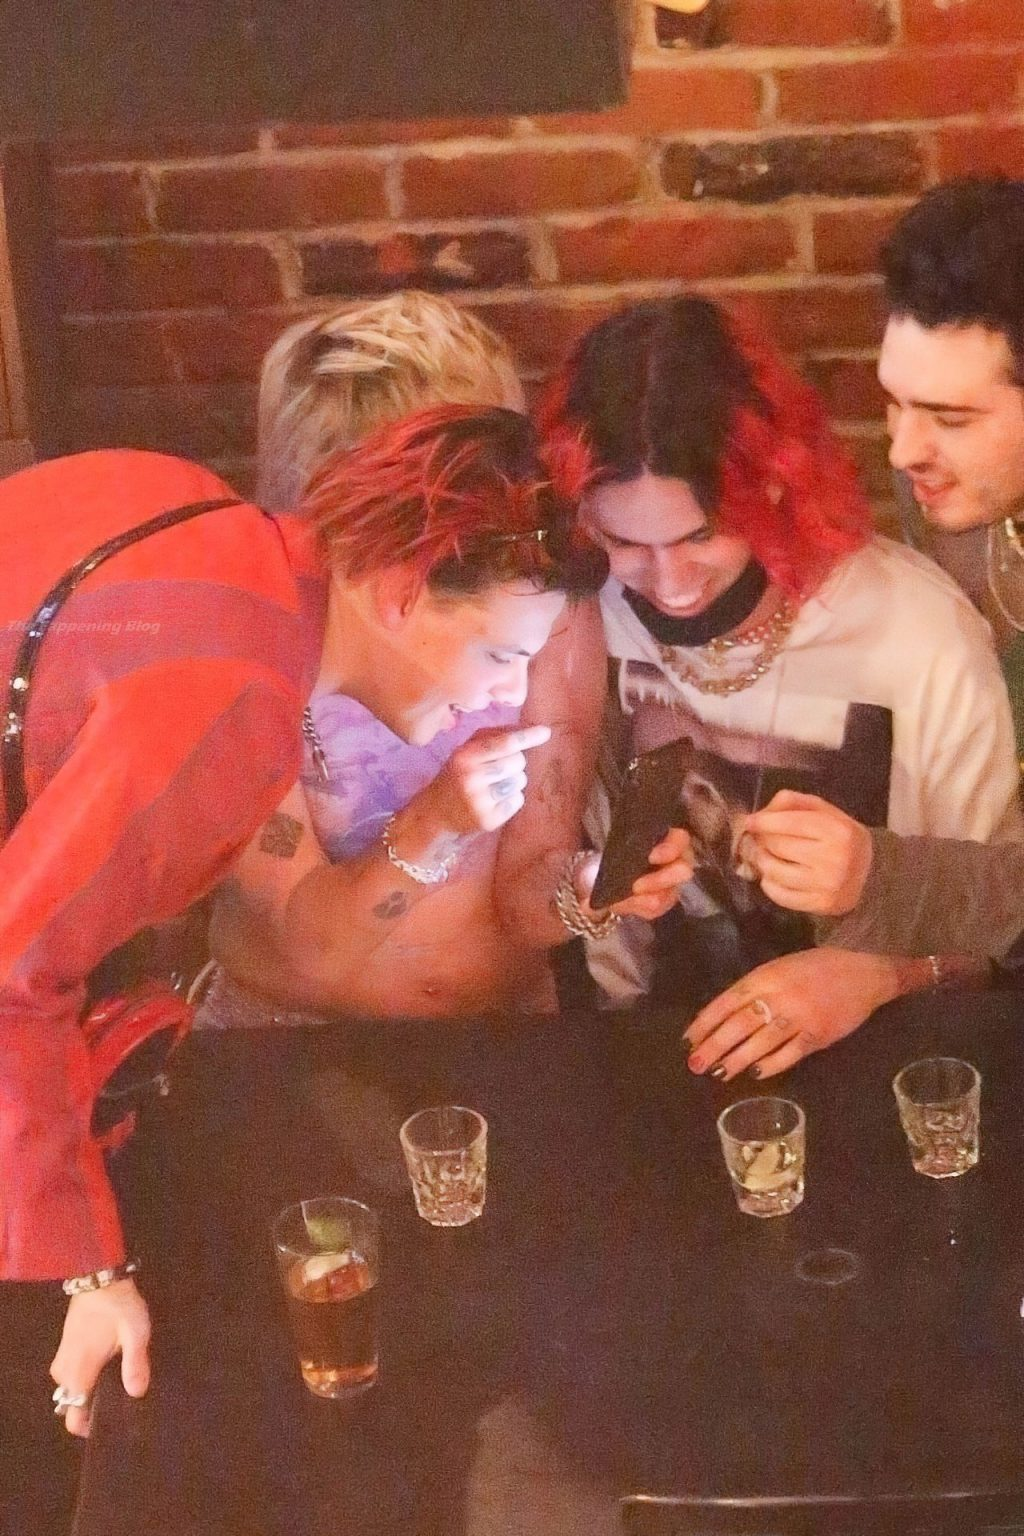 Miley Cyrus Sparks Dating Rumors as She is Seen Getting Very Frisky with Yungblud (64 Photos)